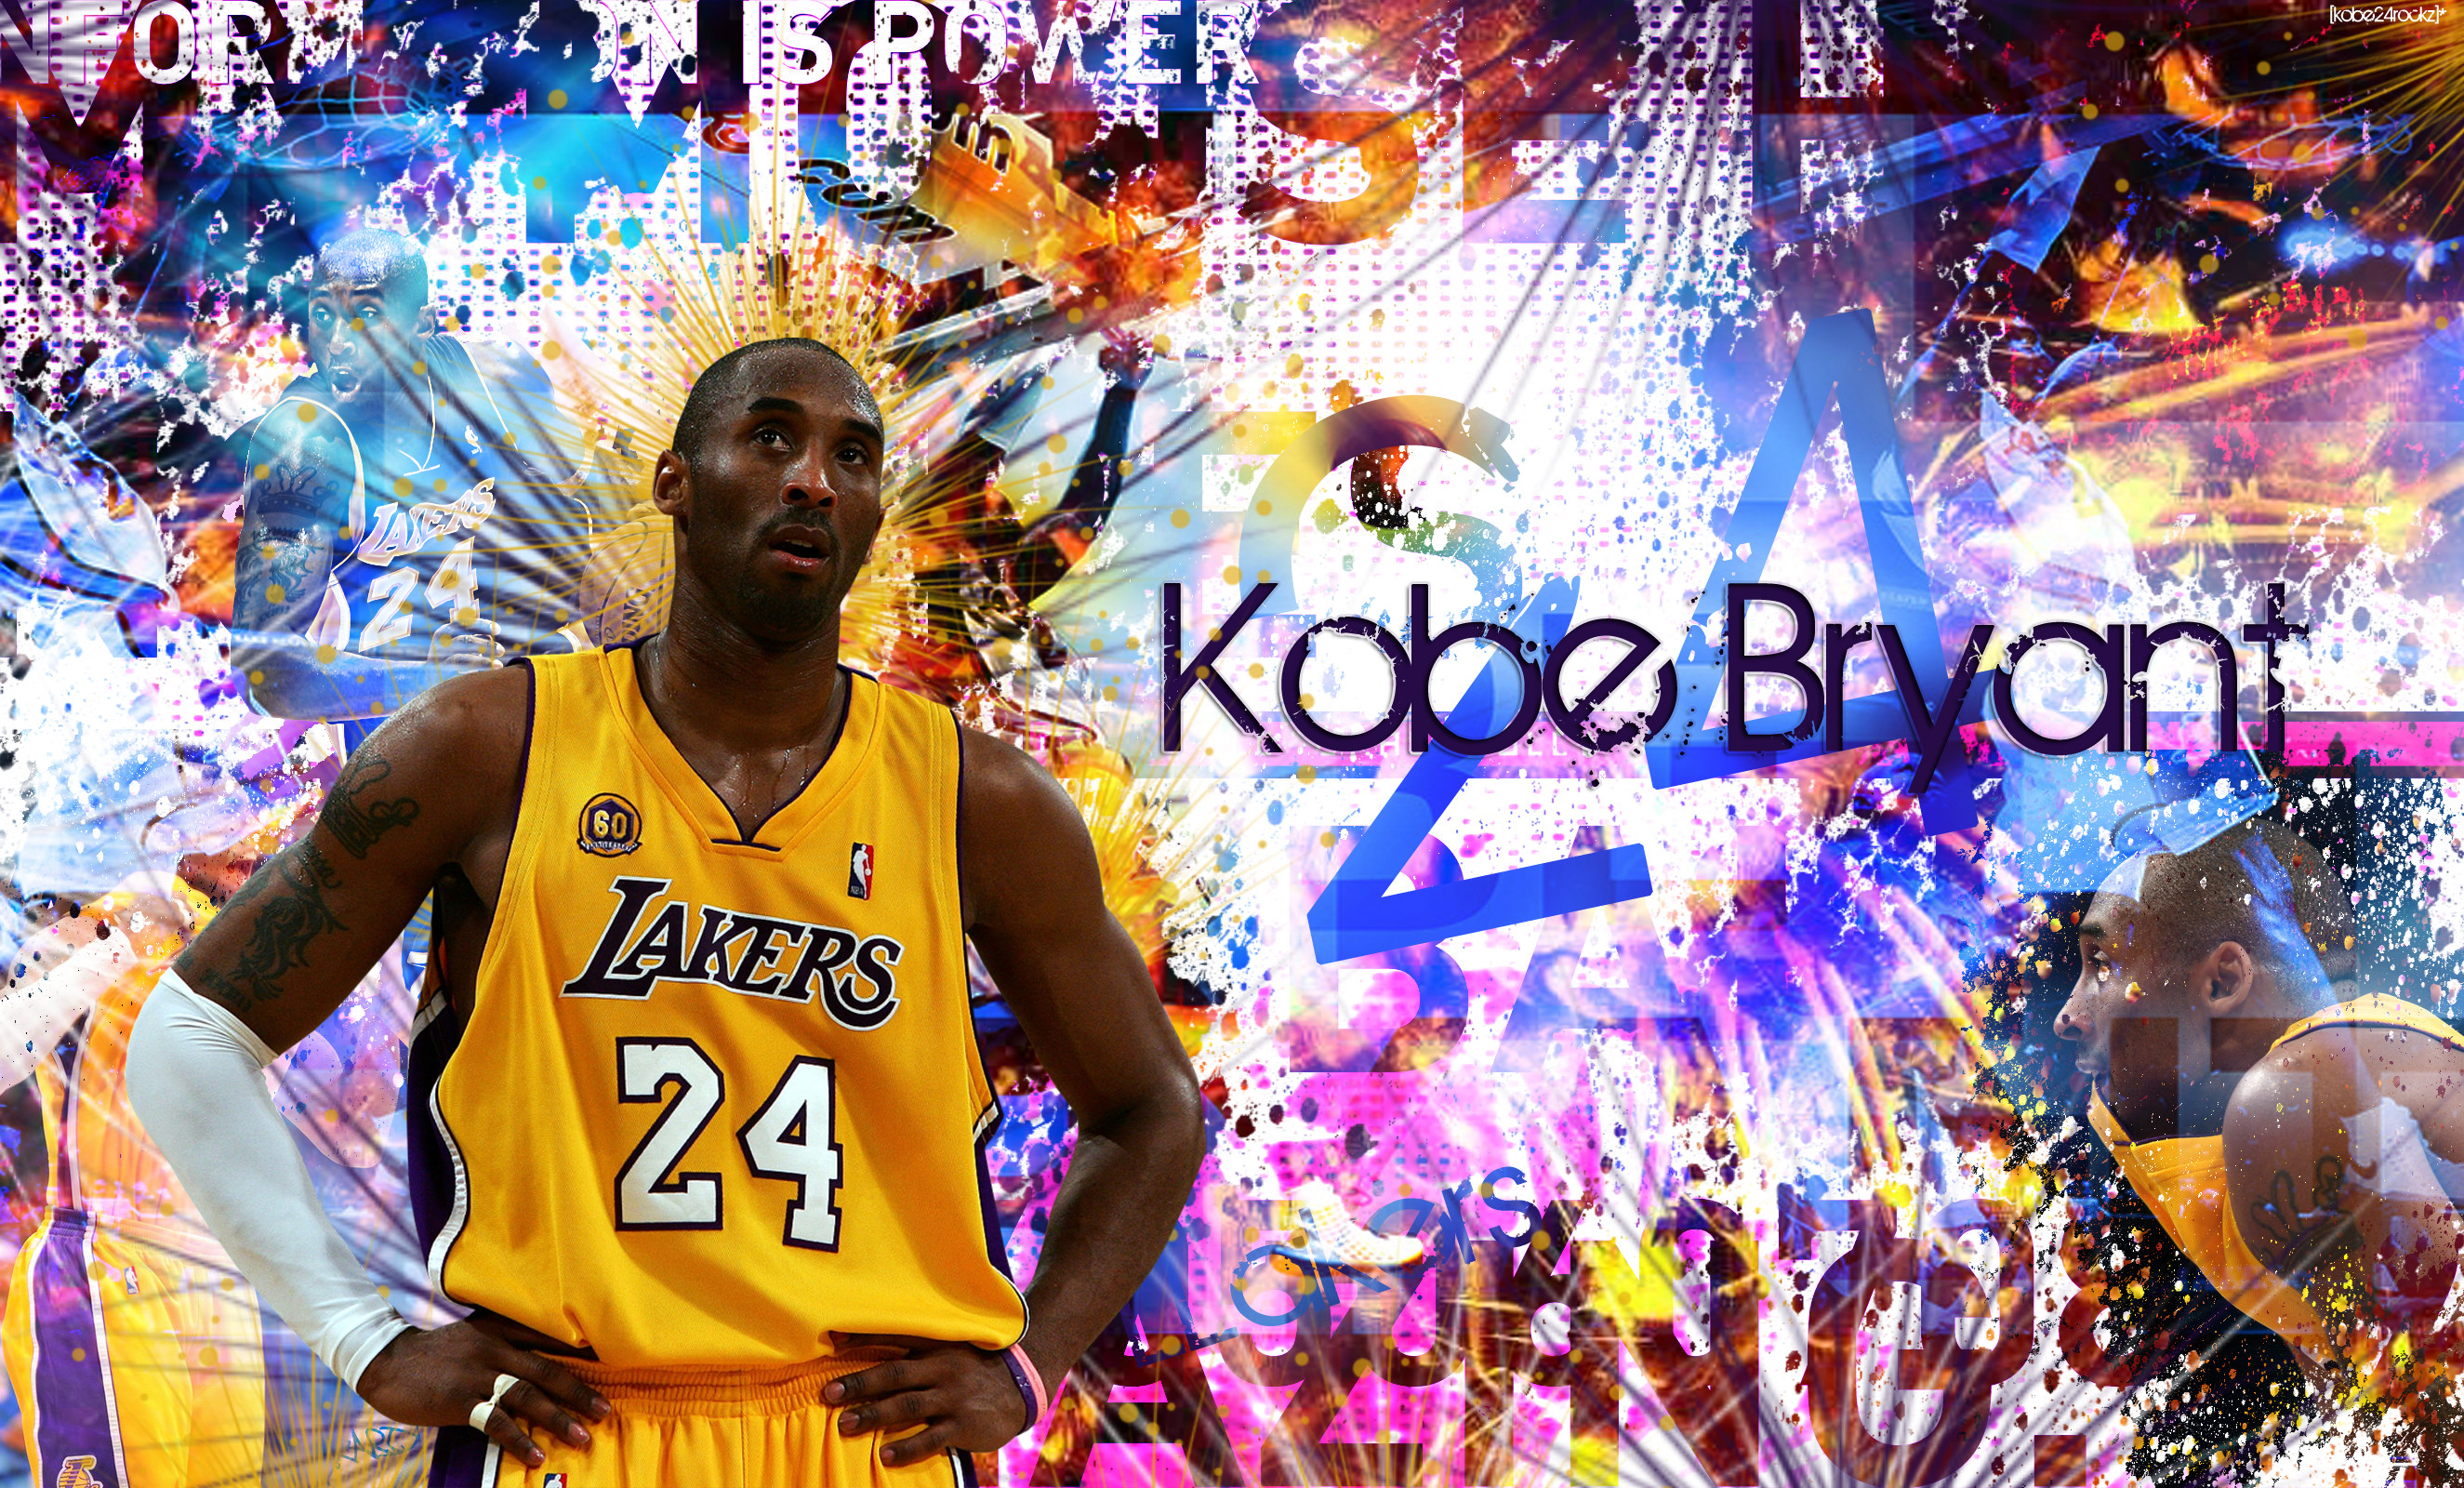 Nba Kobe Bryant Wallpaper: Kobe Bryant Wallpapers (77+ Images